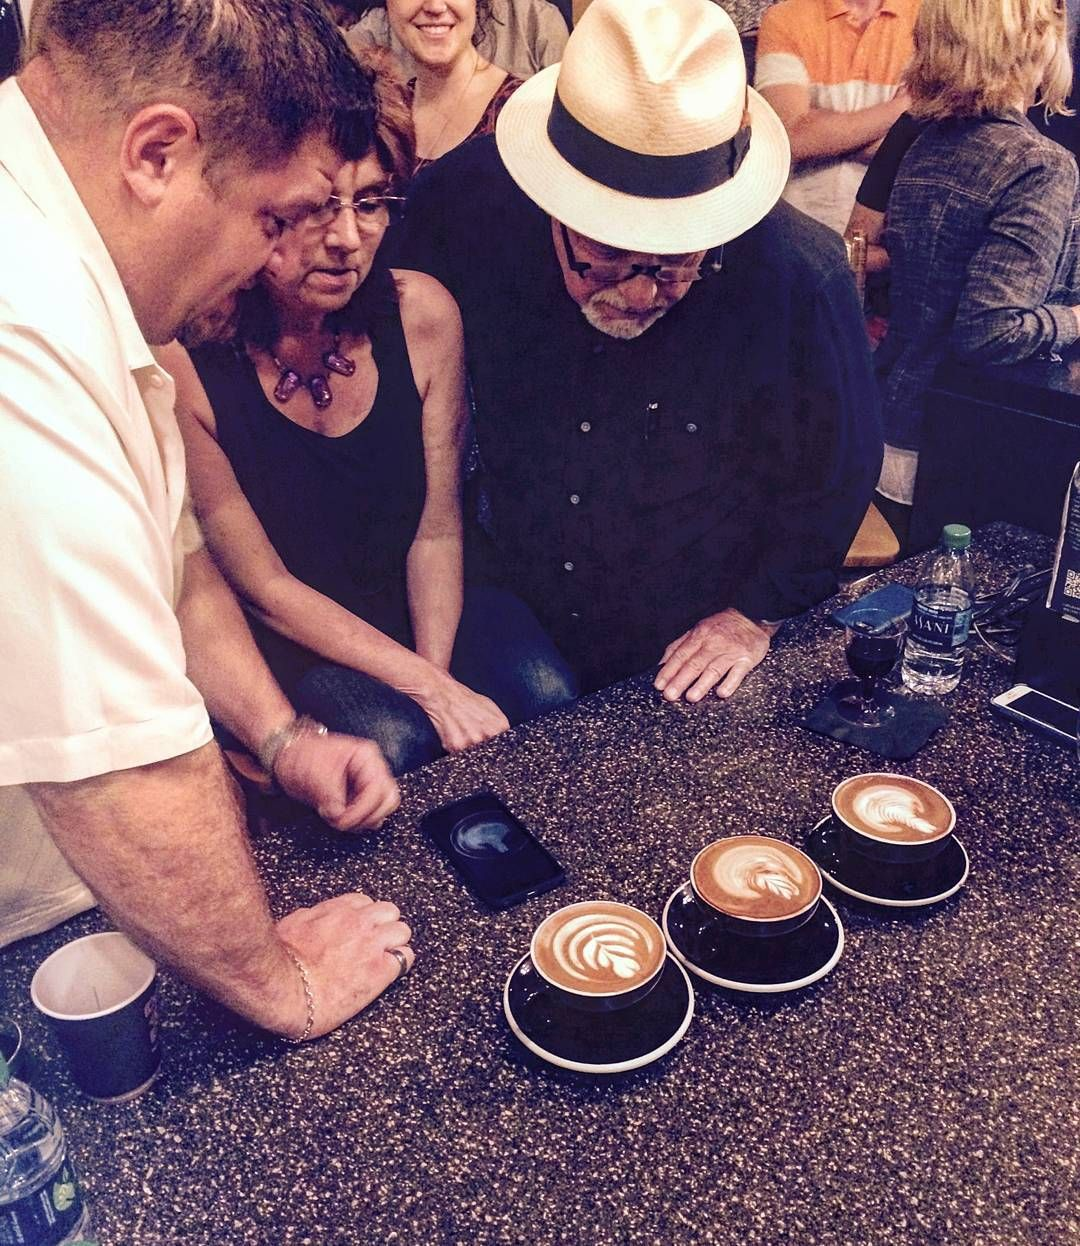 Congratulations Kyle (1st) Sierra (2nd) and Sam (3rd)!!! @caffedarte #latteartist  #latteartcompetition